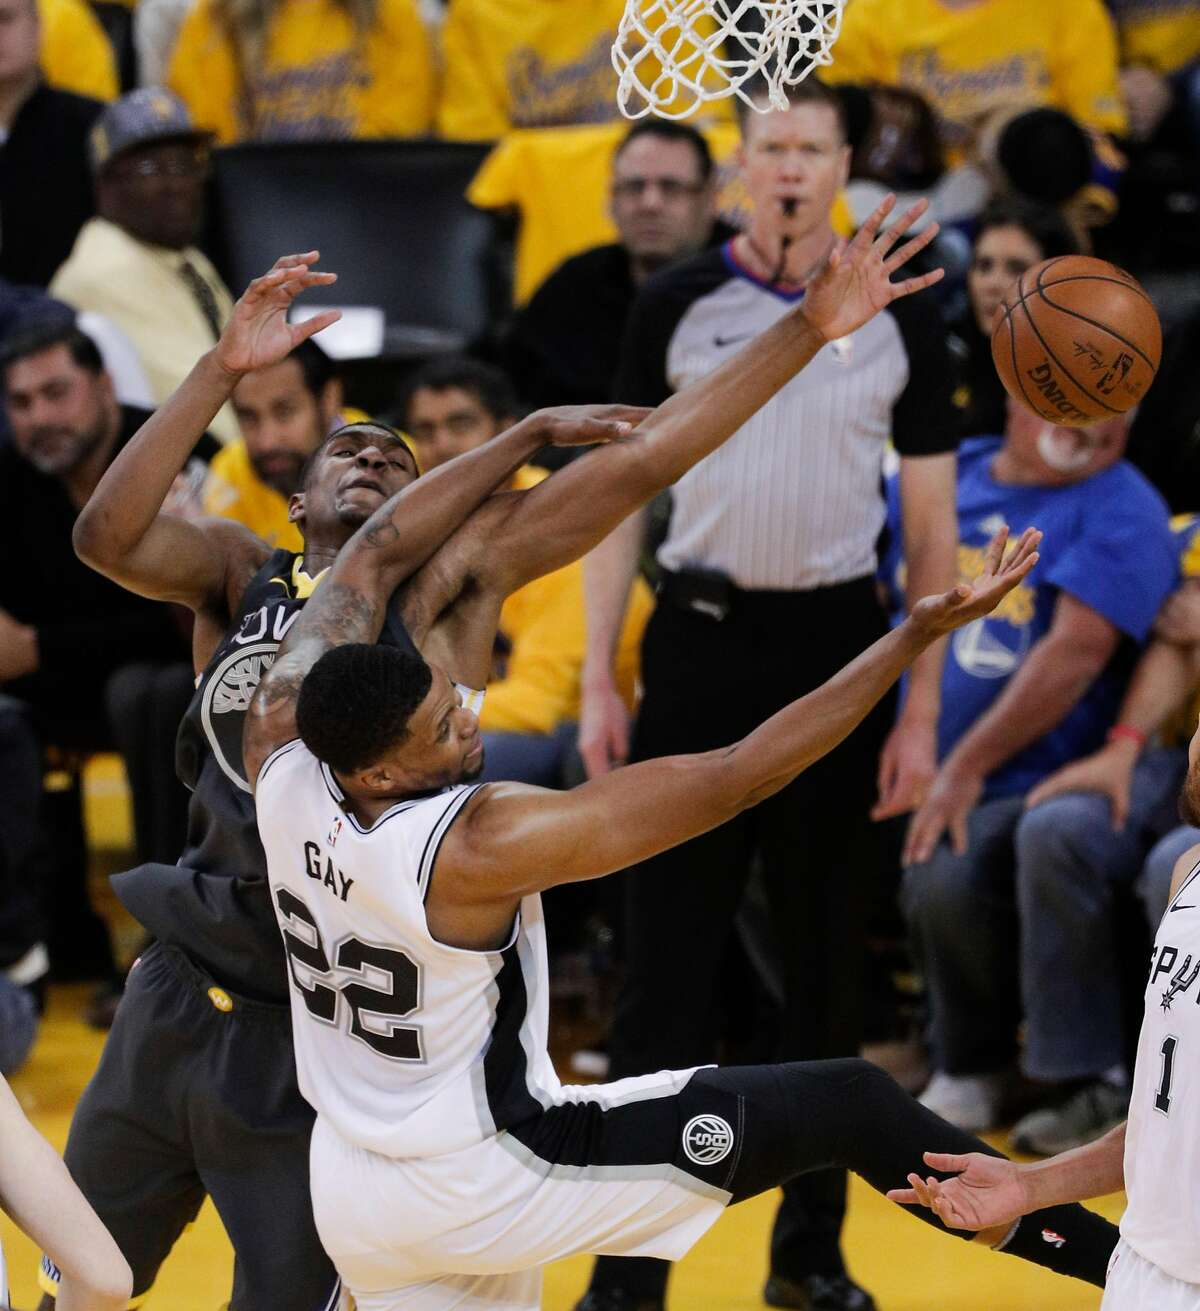 Golden State Warriors' Kevon Looney and San Antonio Spurs' Rudy Gay fight for a rebound in the second quarter during game 2 of round 1 of the Western Conference Finals at Oracle Arena on Monday, April 16, 2018 in Oakland, Calif.